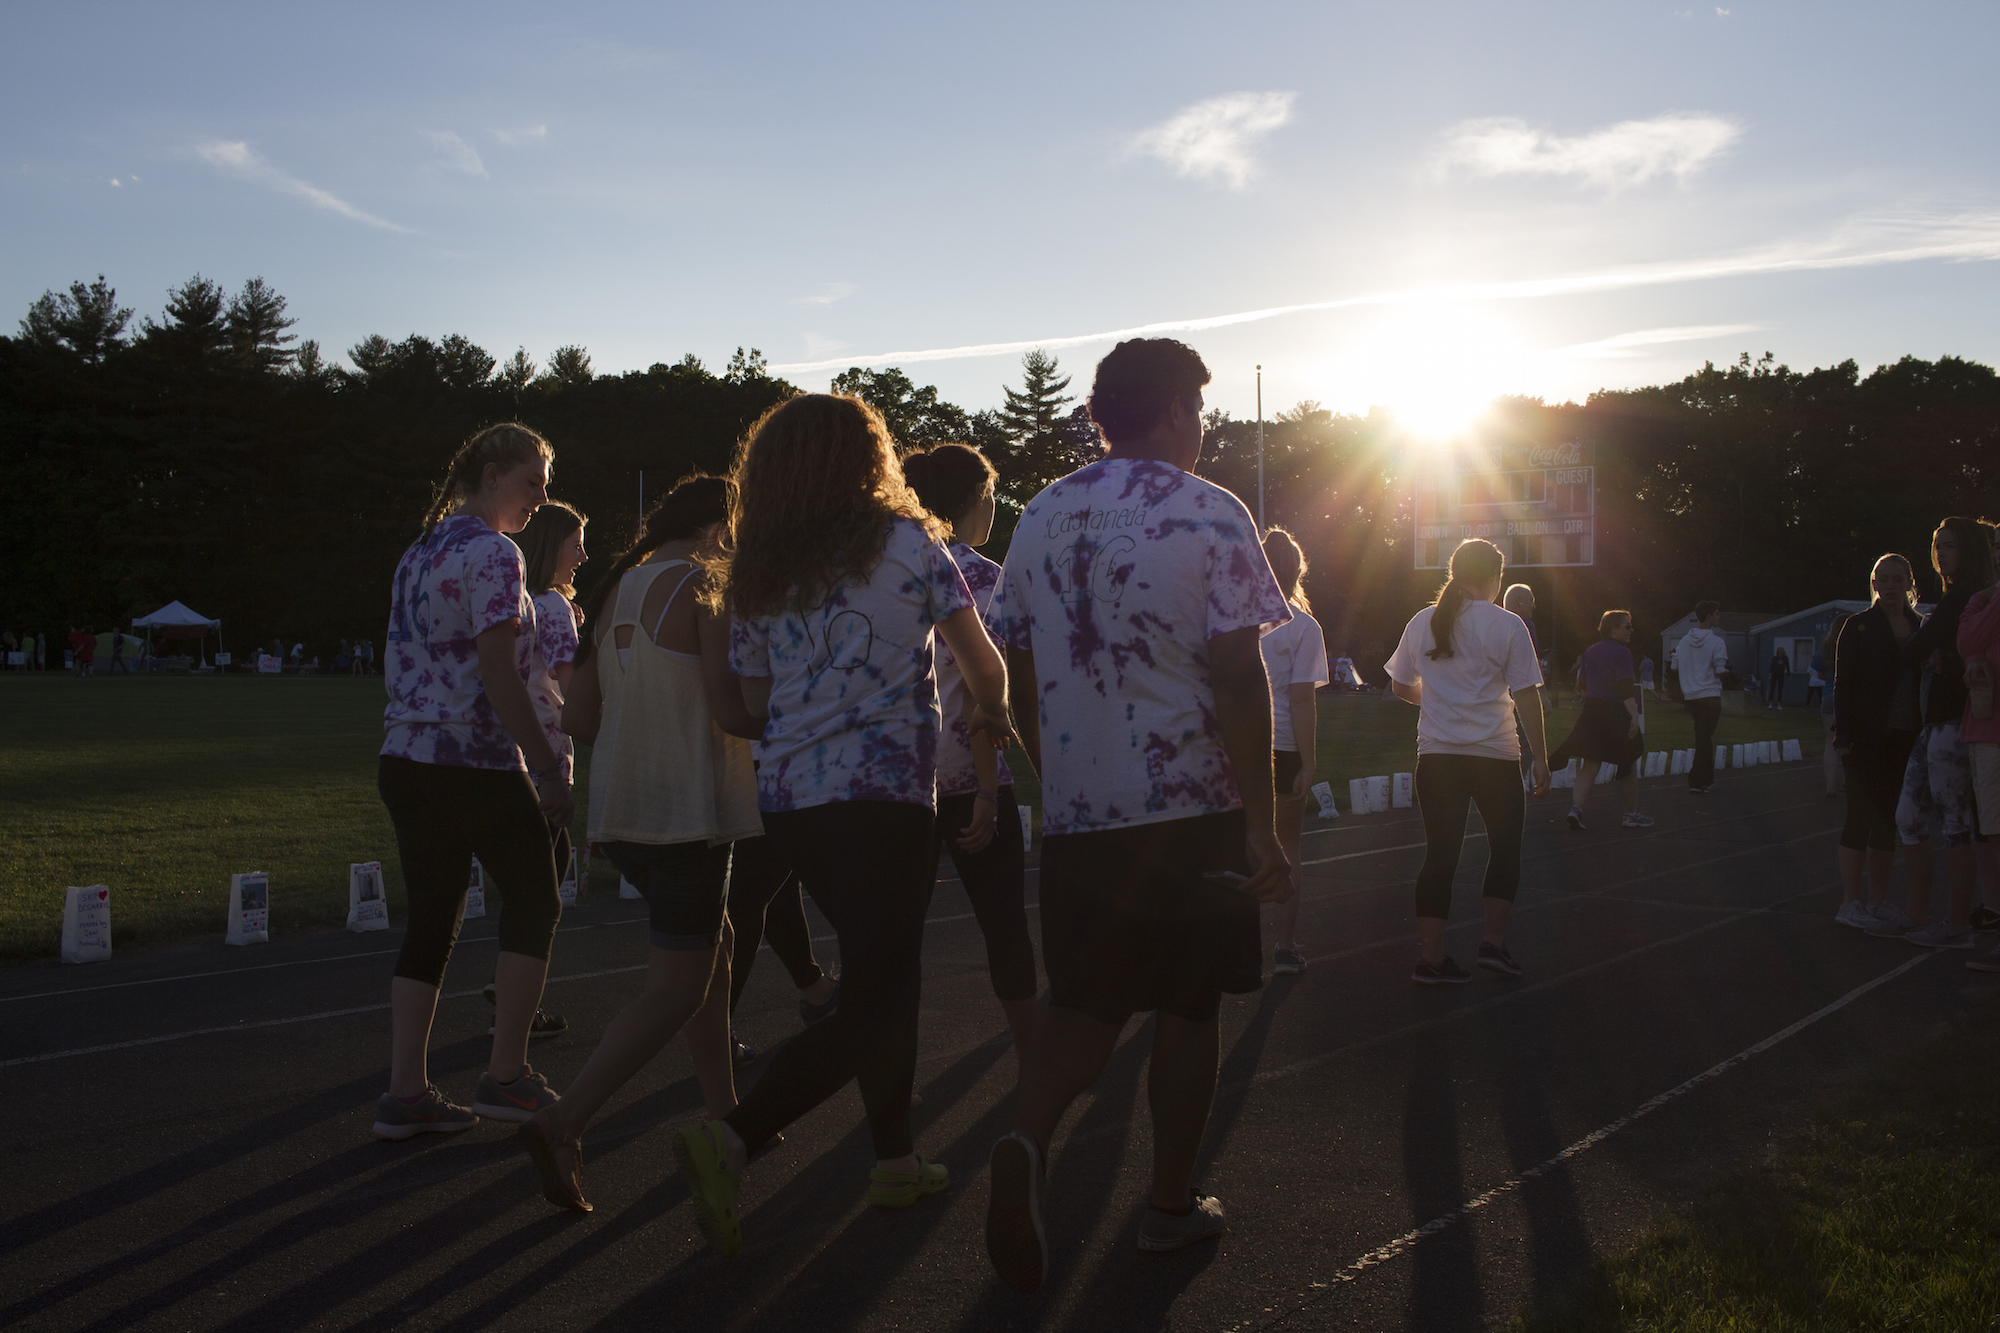 Relay for Life event in Medway, MA, 2016. Photography by Geena Matuson @geenamatuson #thegirlmirage.